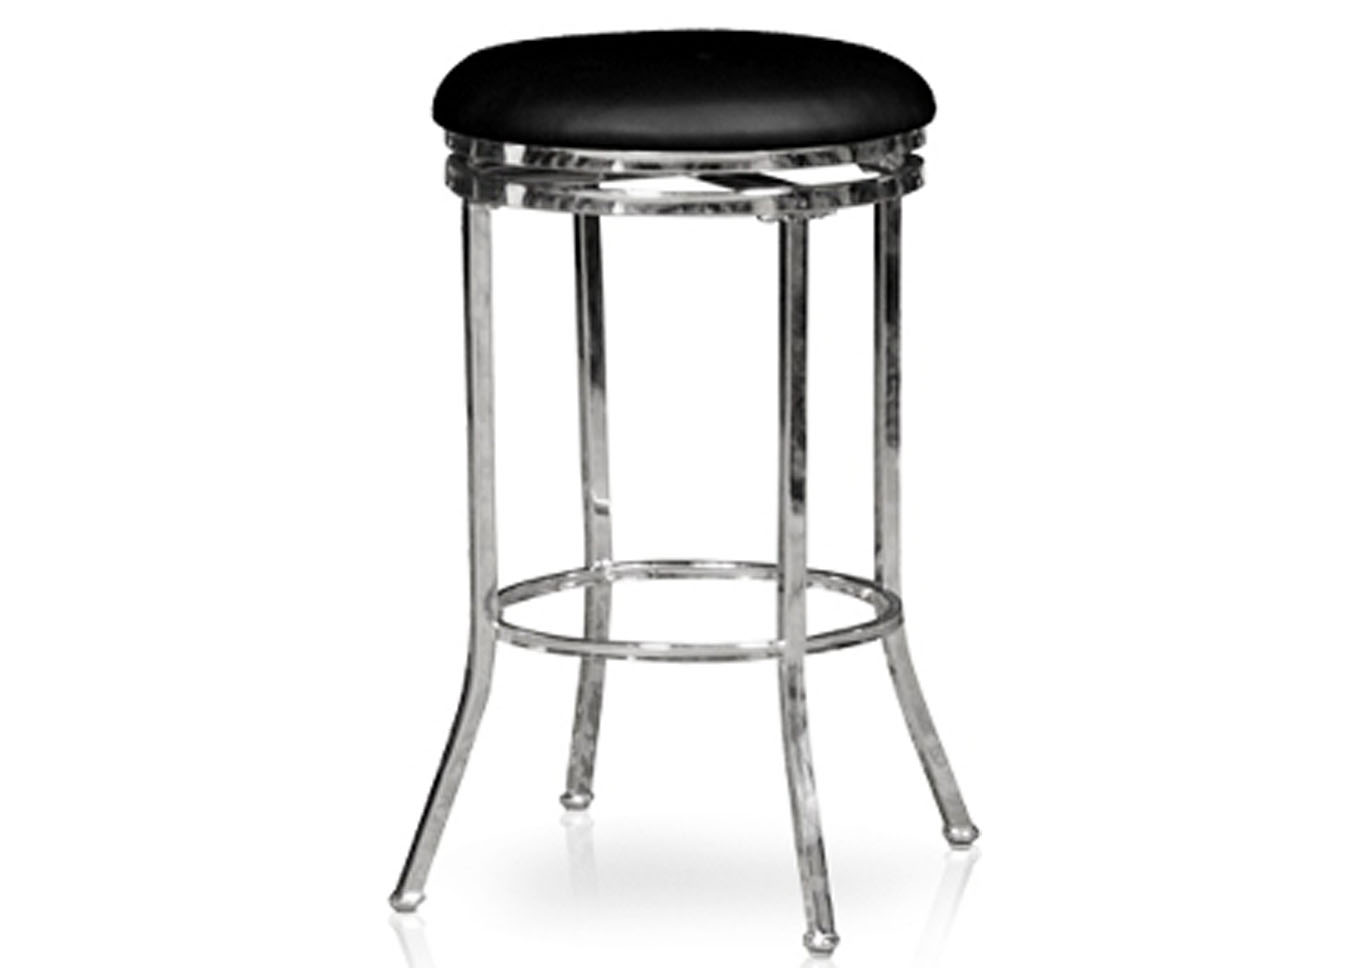 Artisan 2pc Swivel Stool Set - Black,Instore